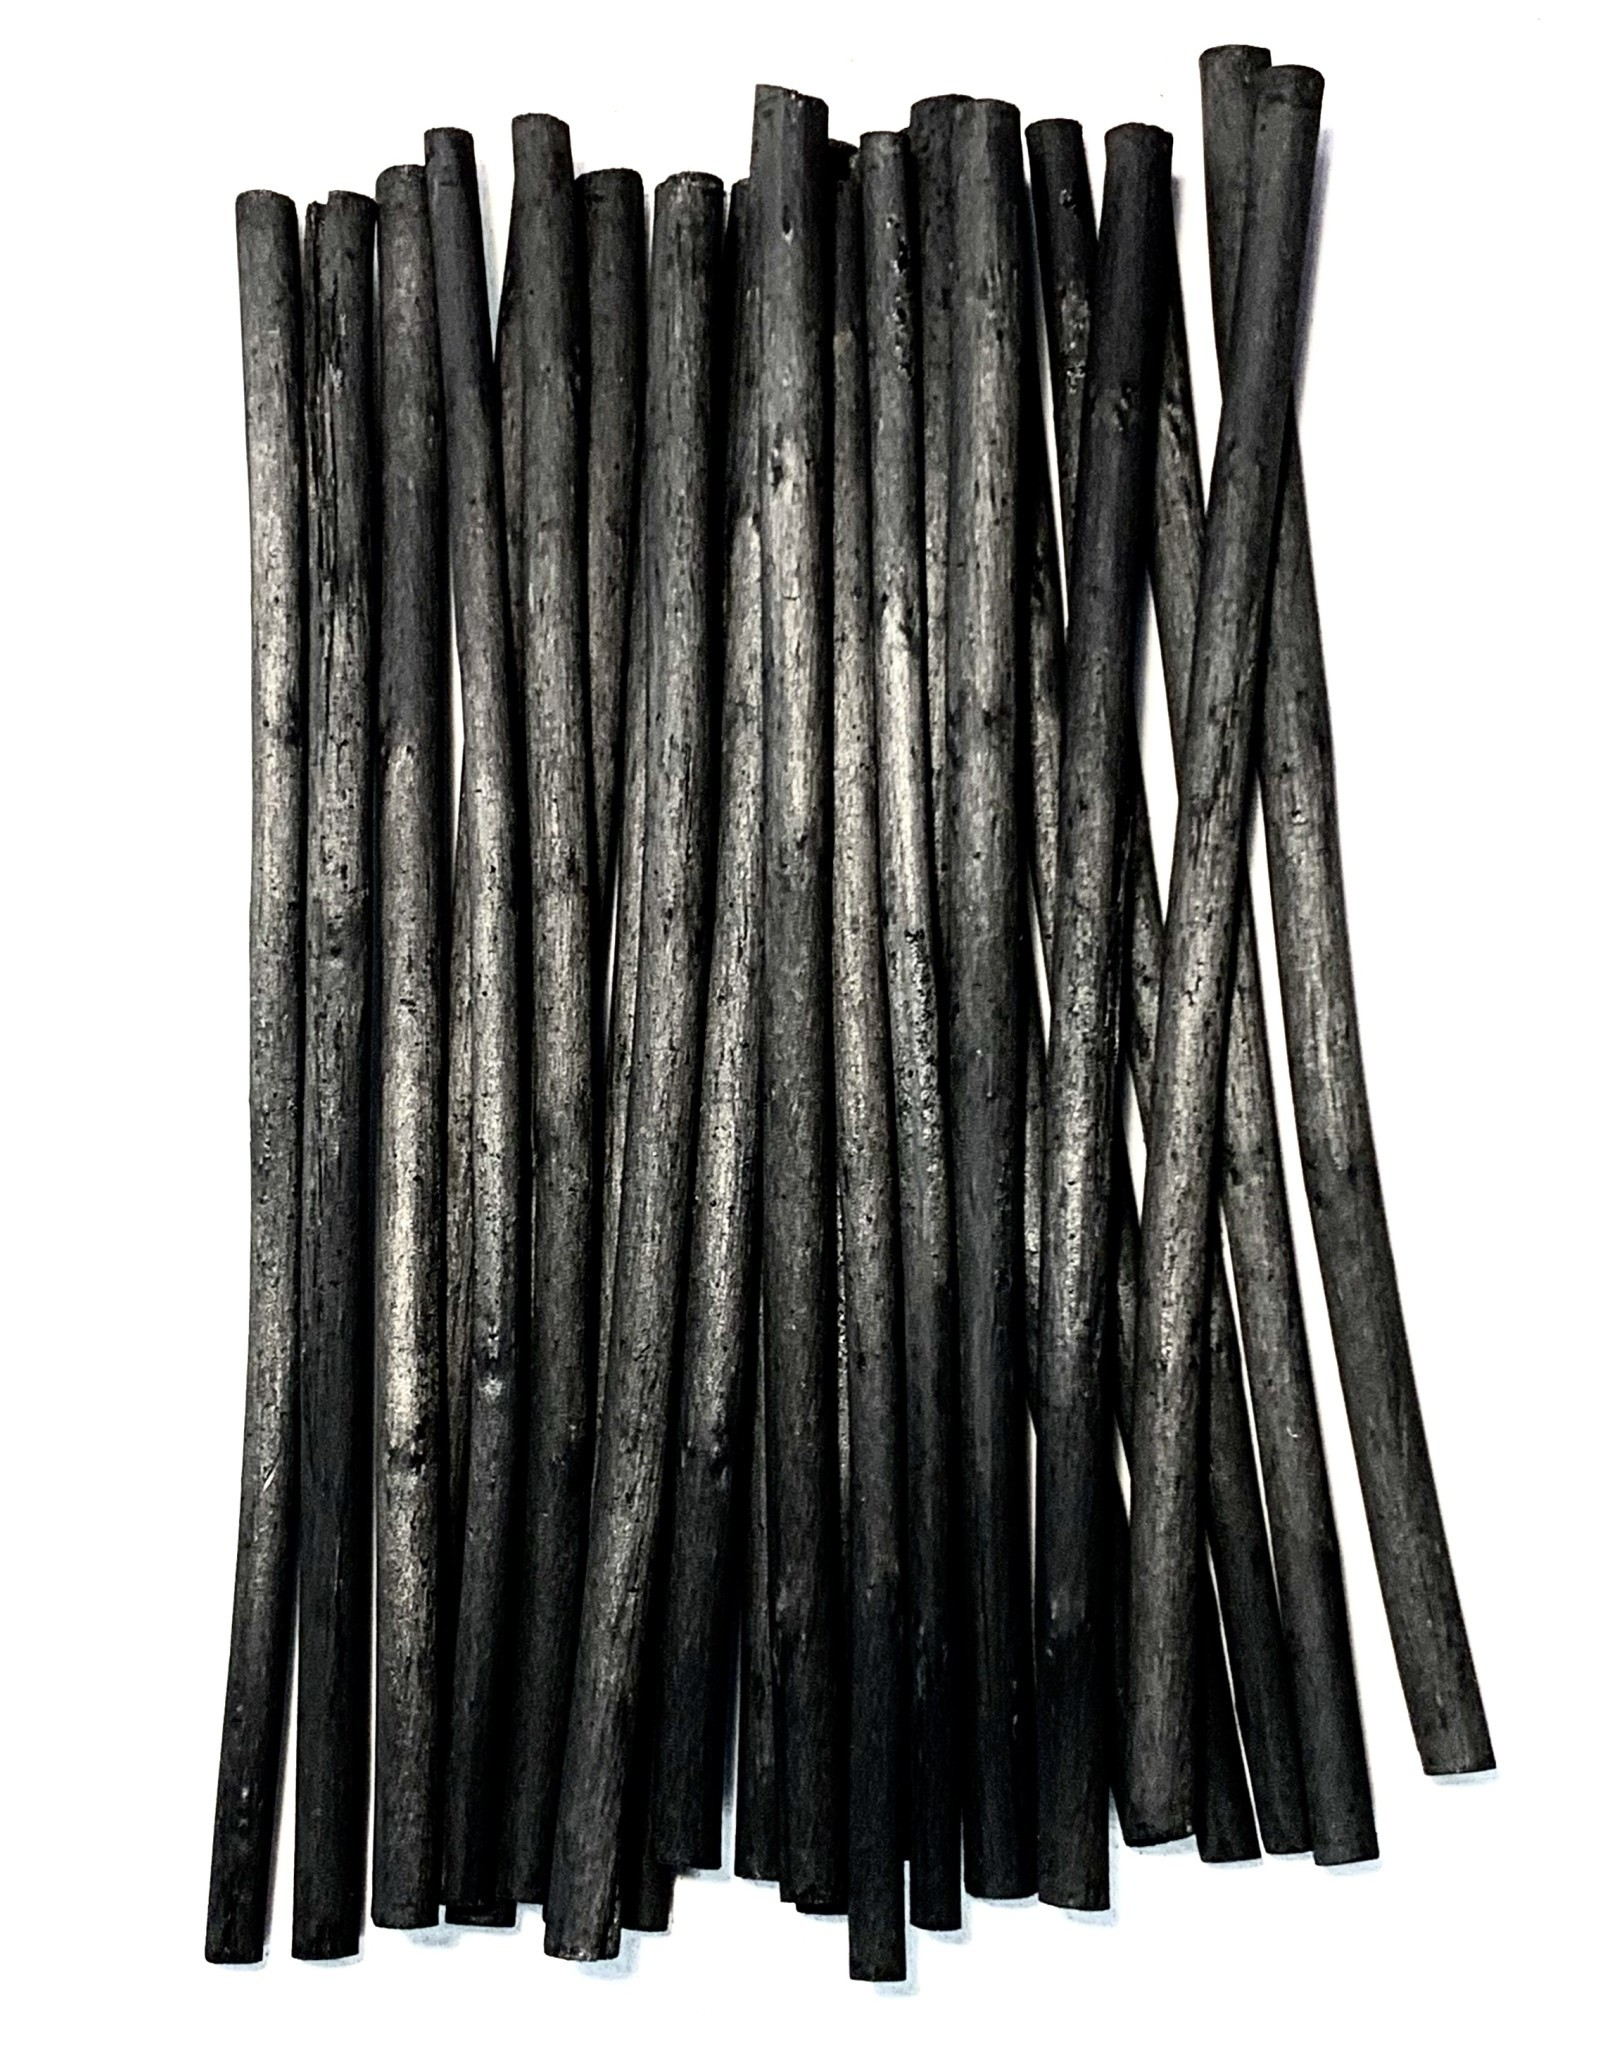 """Willow Charcoal, 5-6mm 3/16"""" Willow Charcoal Sticks - 25pcs"""